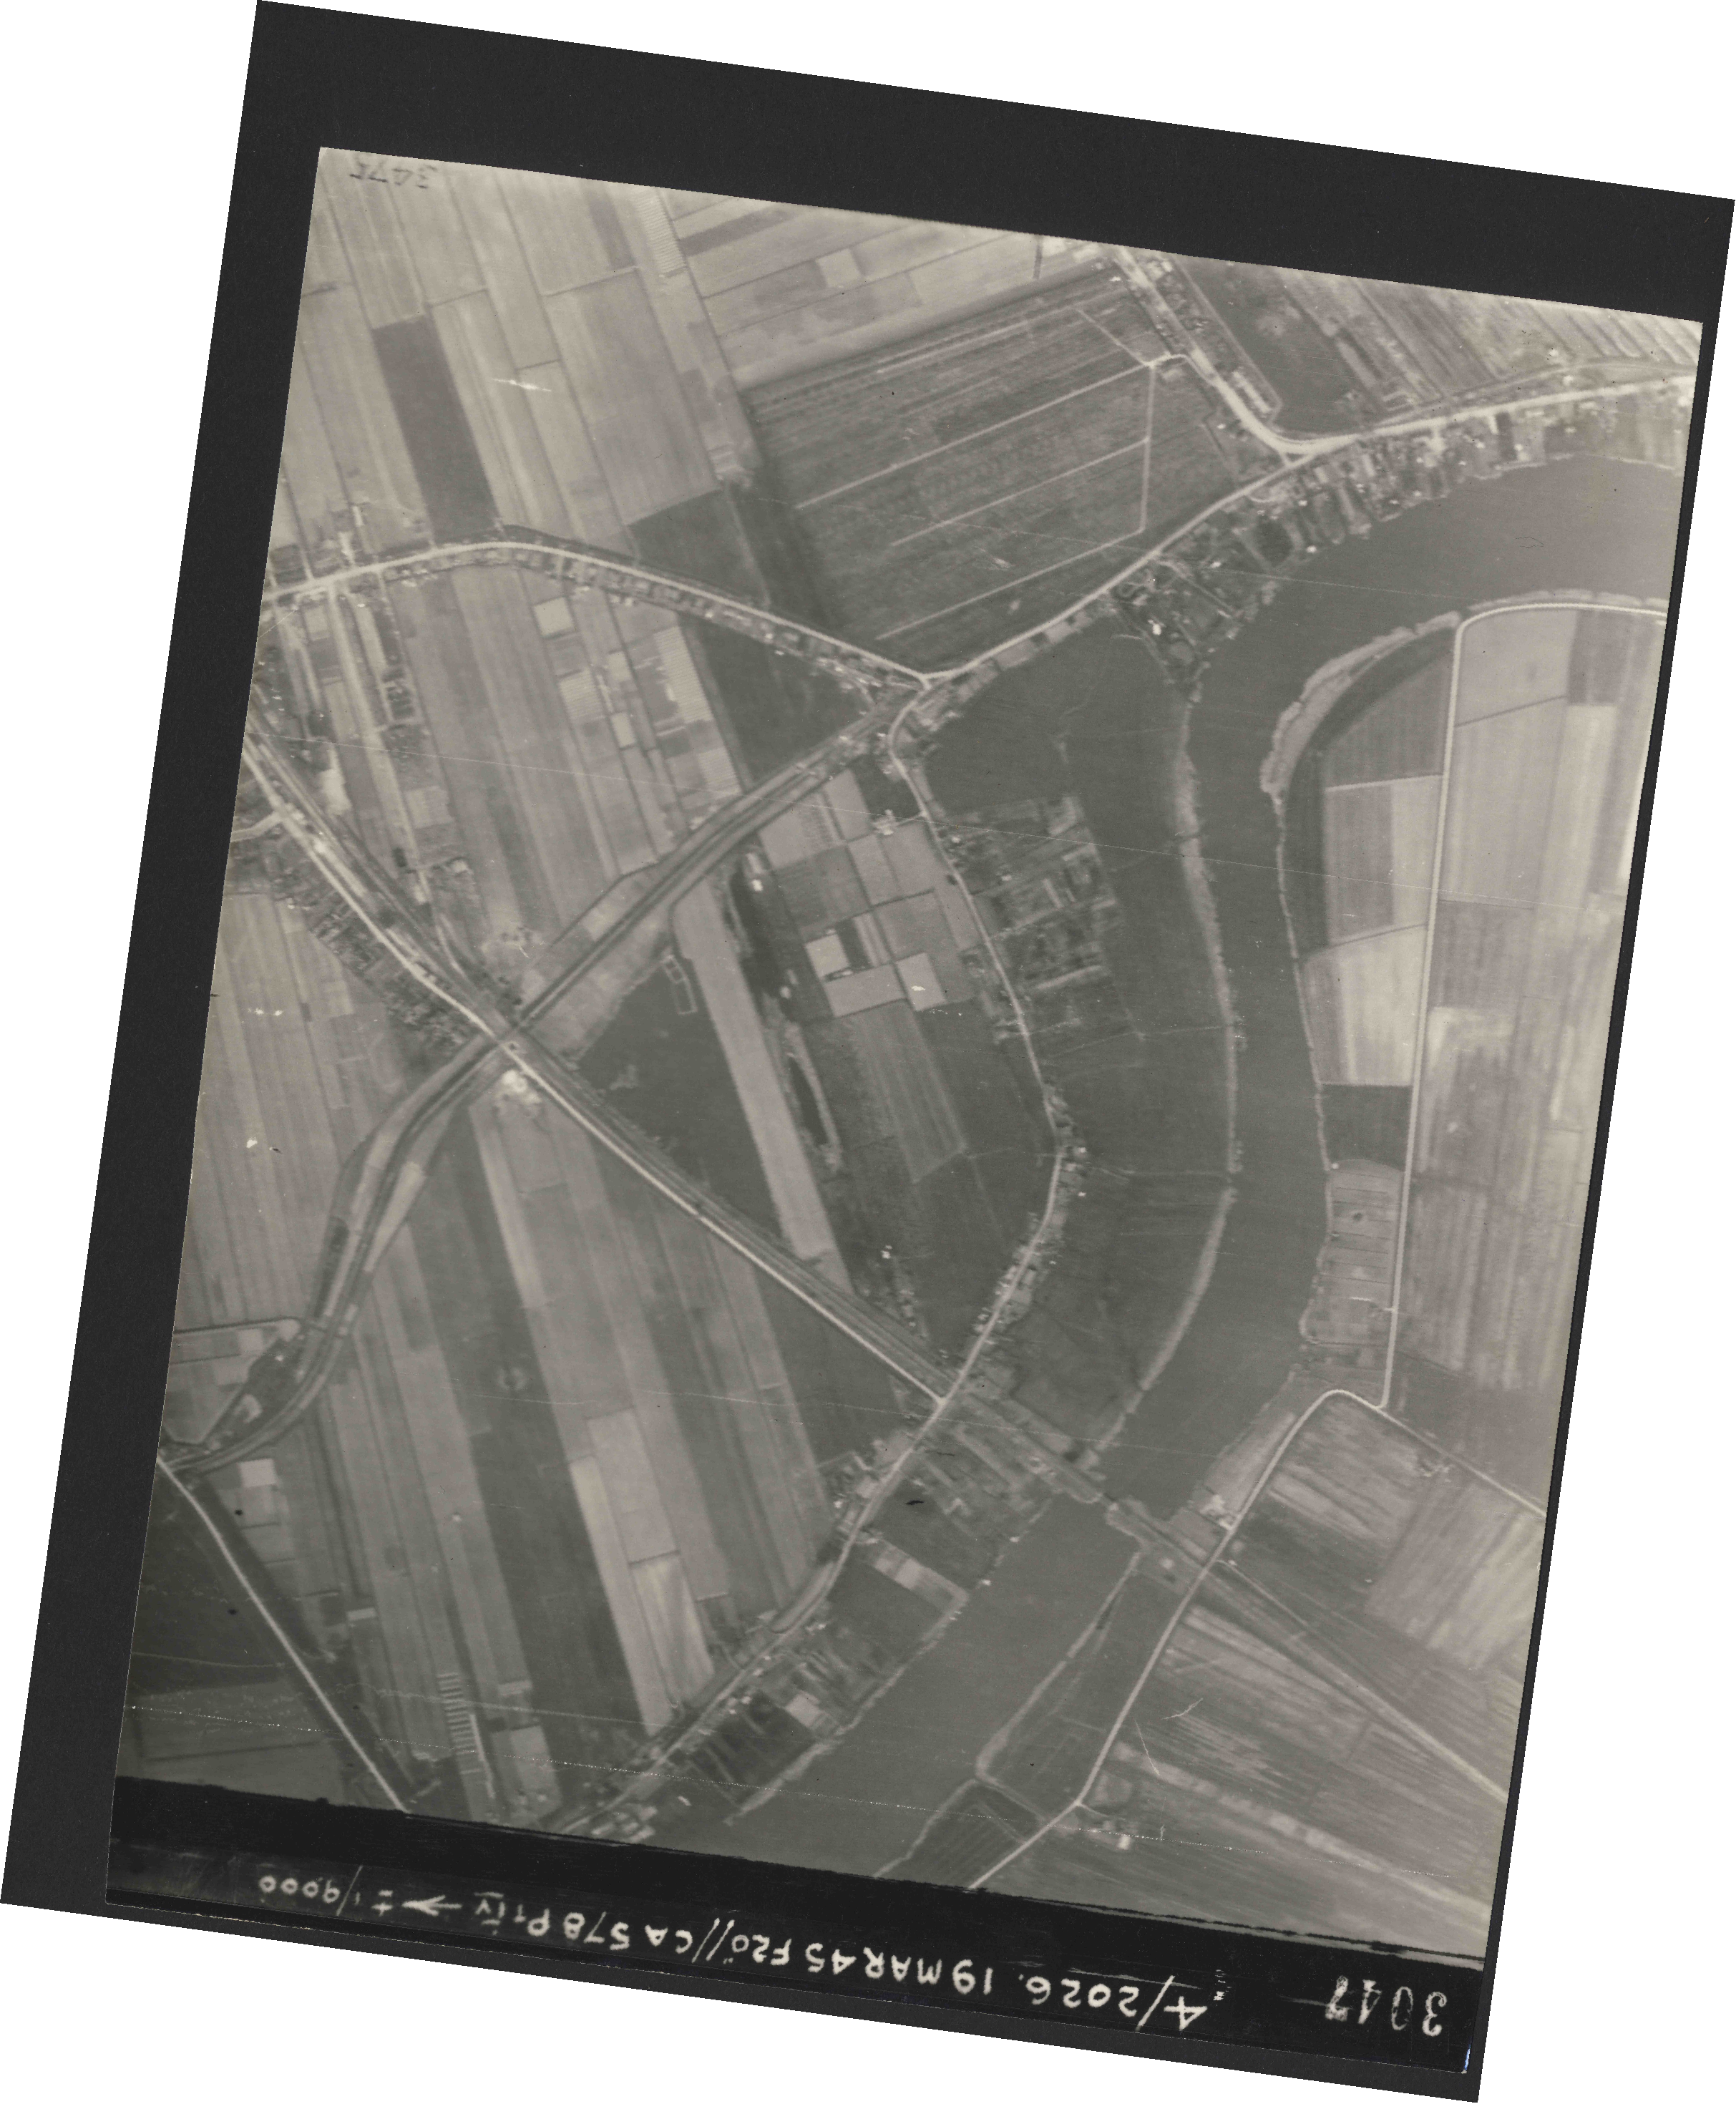 Collection RAF aerial photos 1940-1945 - flight 012, run 04, photo 3047